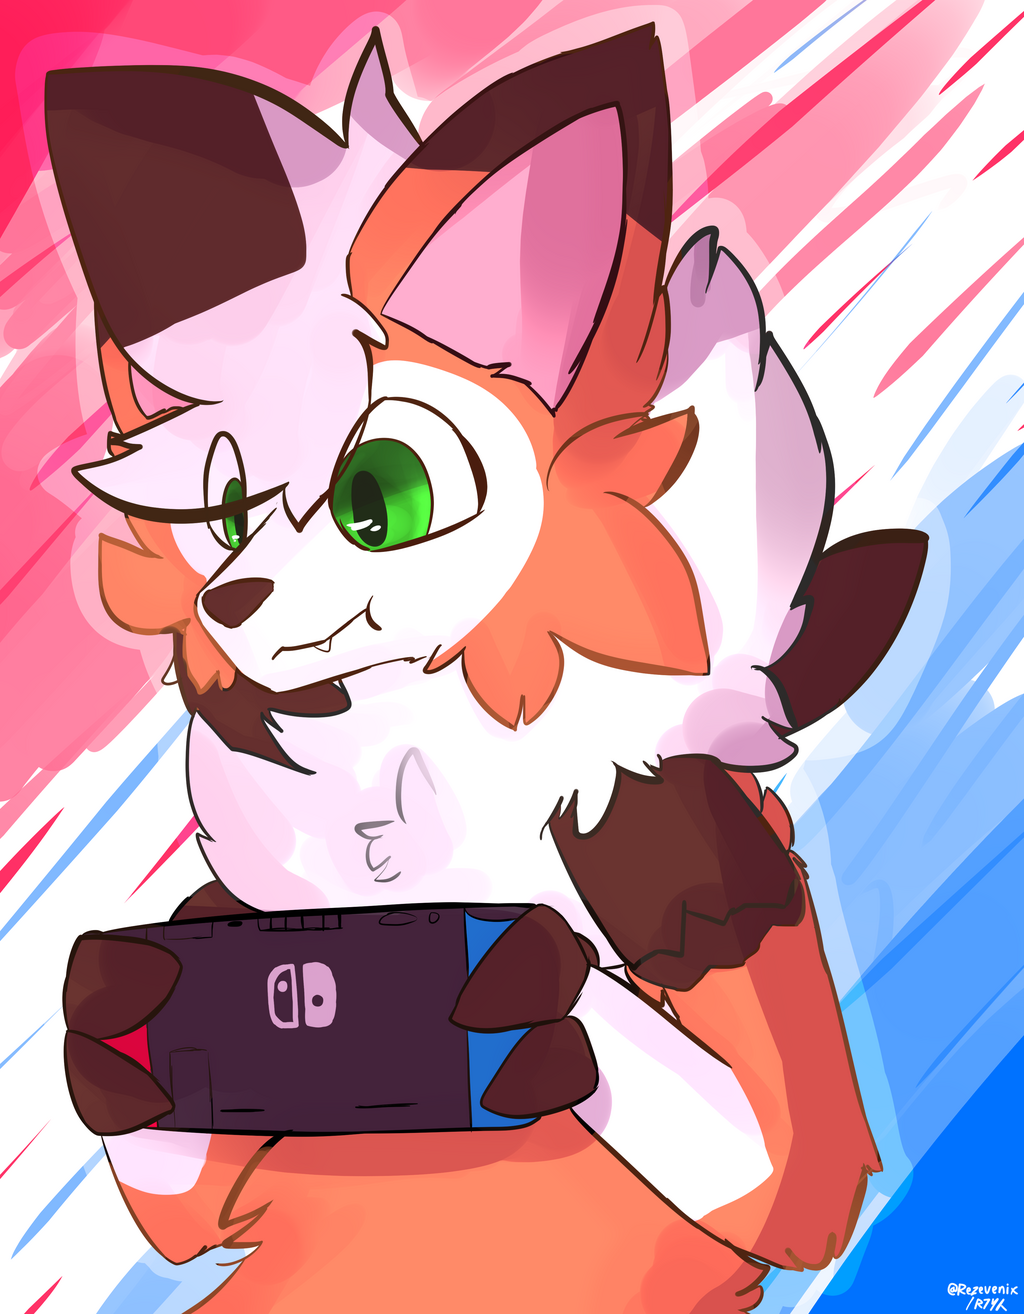 Most recent image: Switch doggo